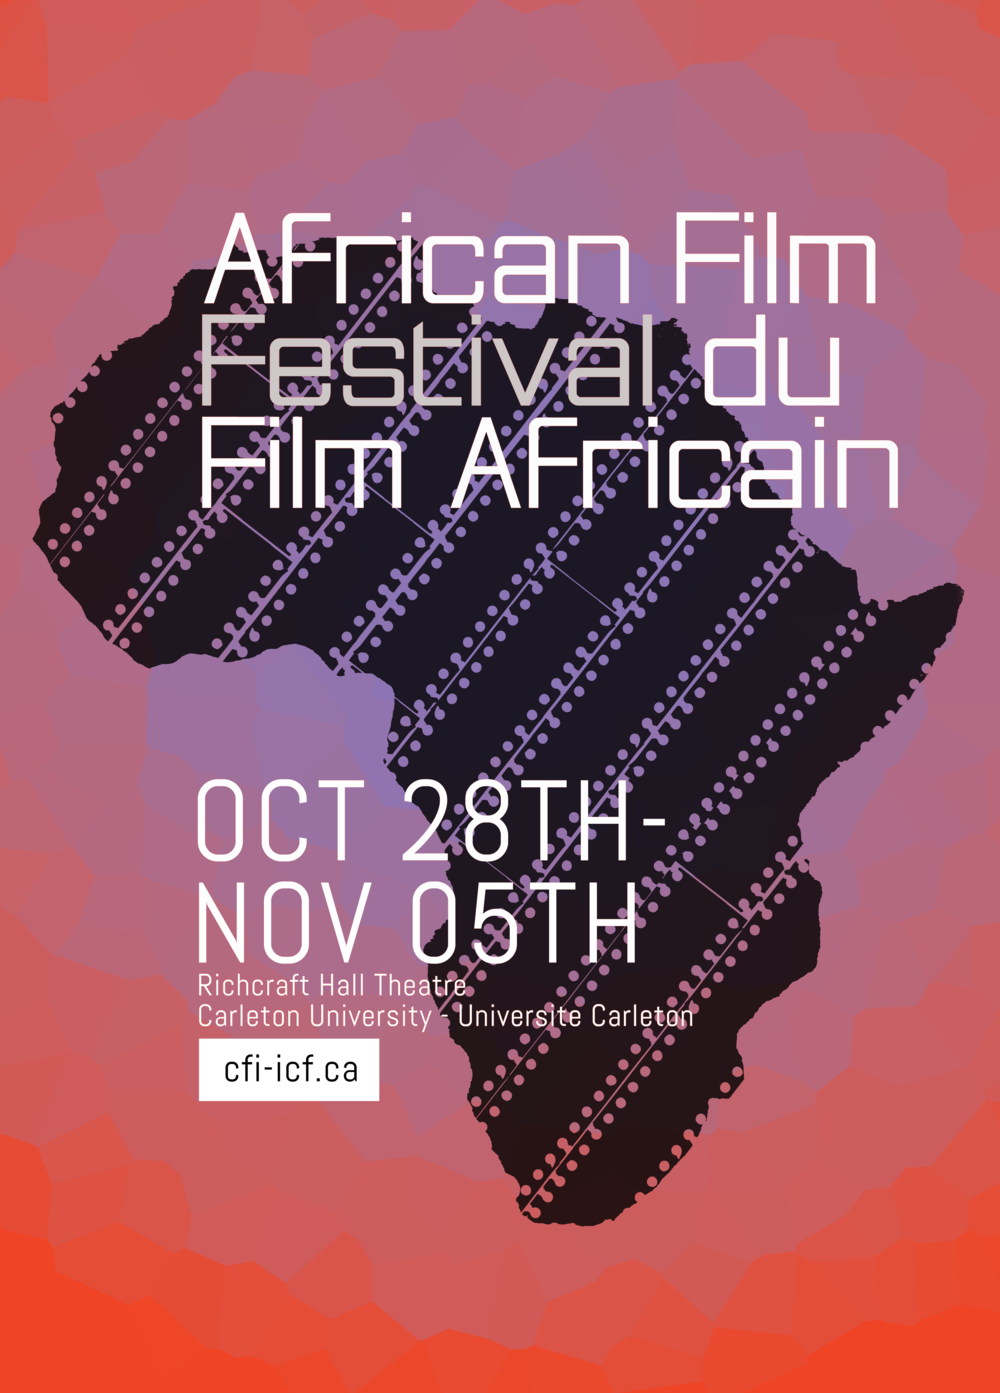 African Film Festival 002 - no logo.png